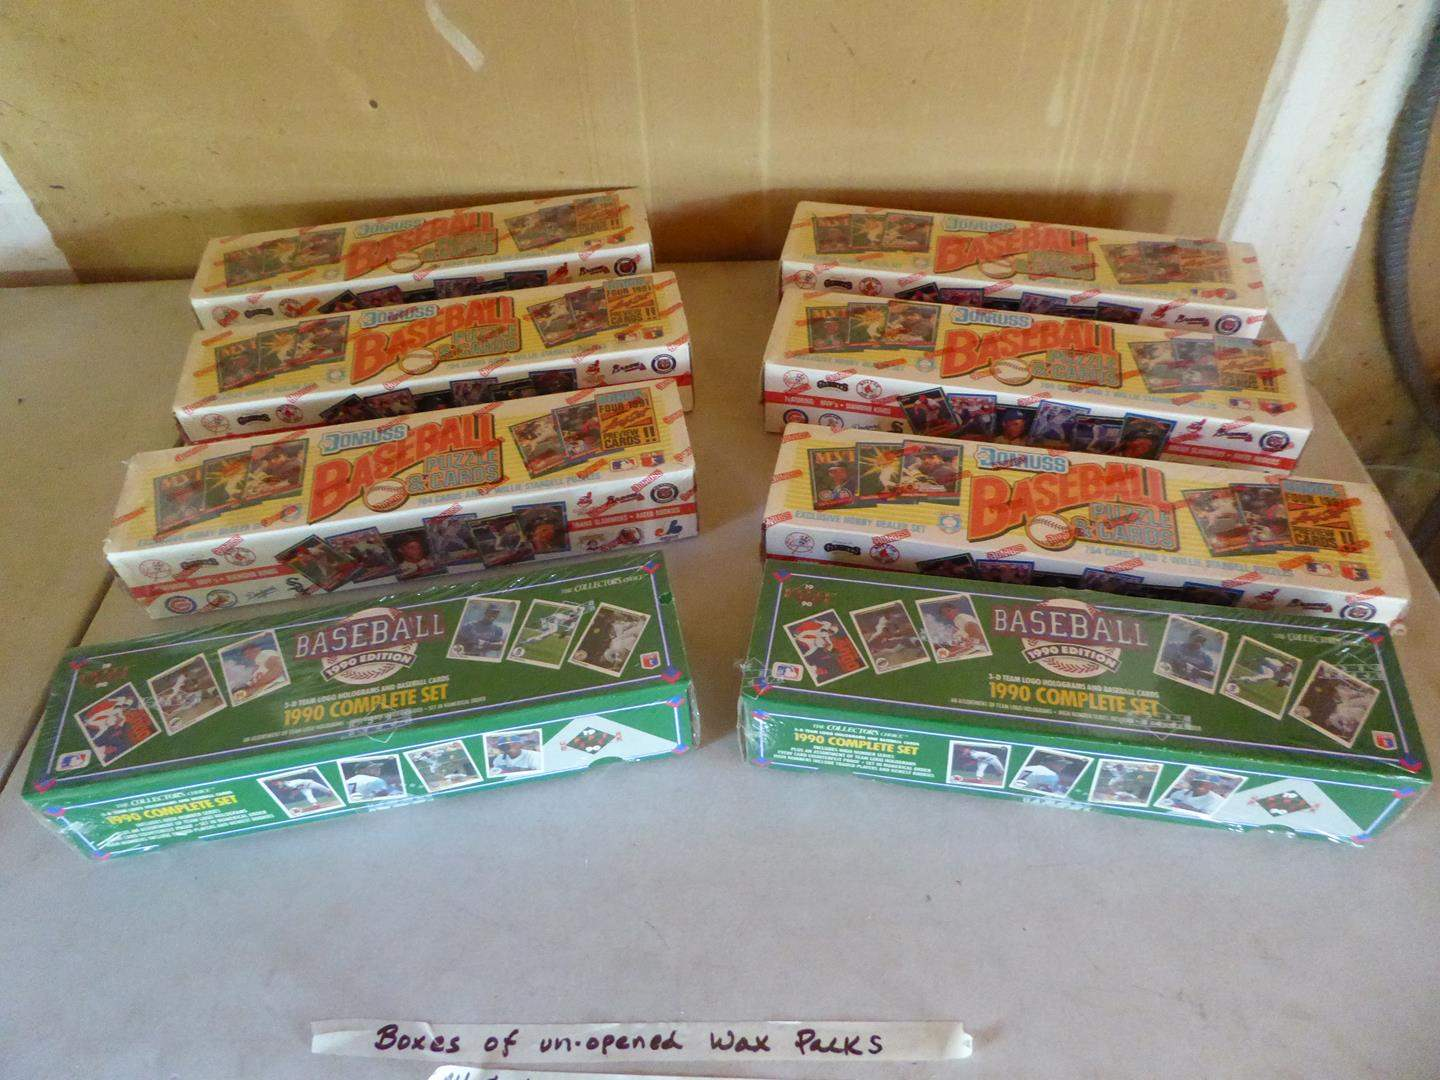 Lot # 405 - 8 Boxes of Unopened Baseball Wax Packs - All Cellophane Wrapped (main image)